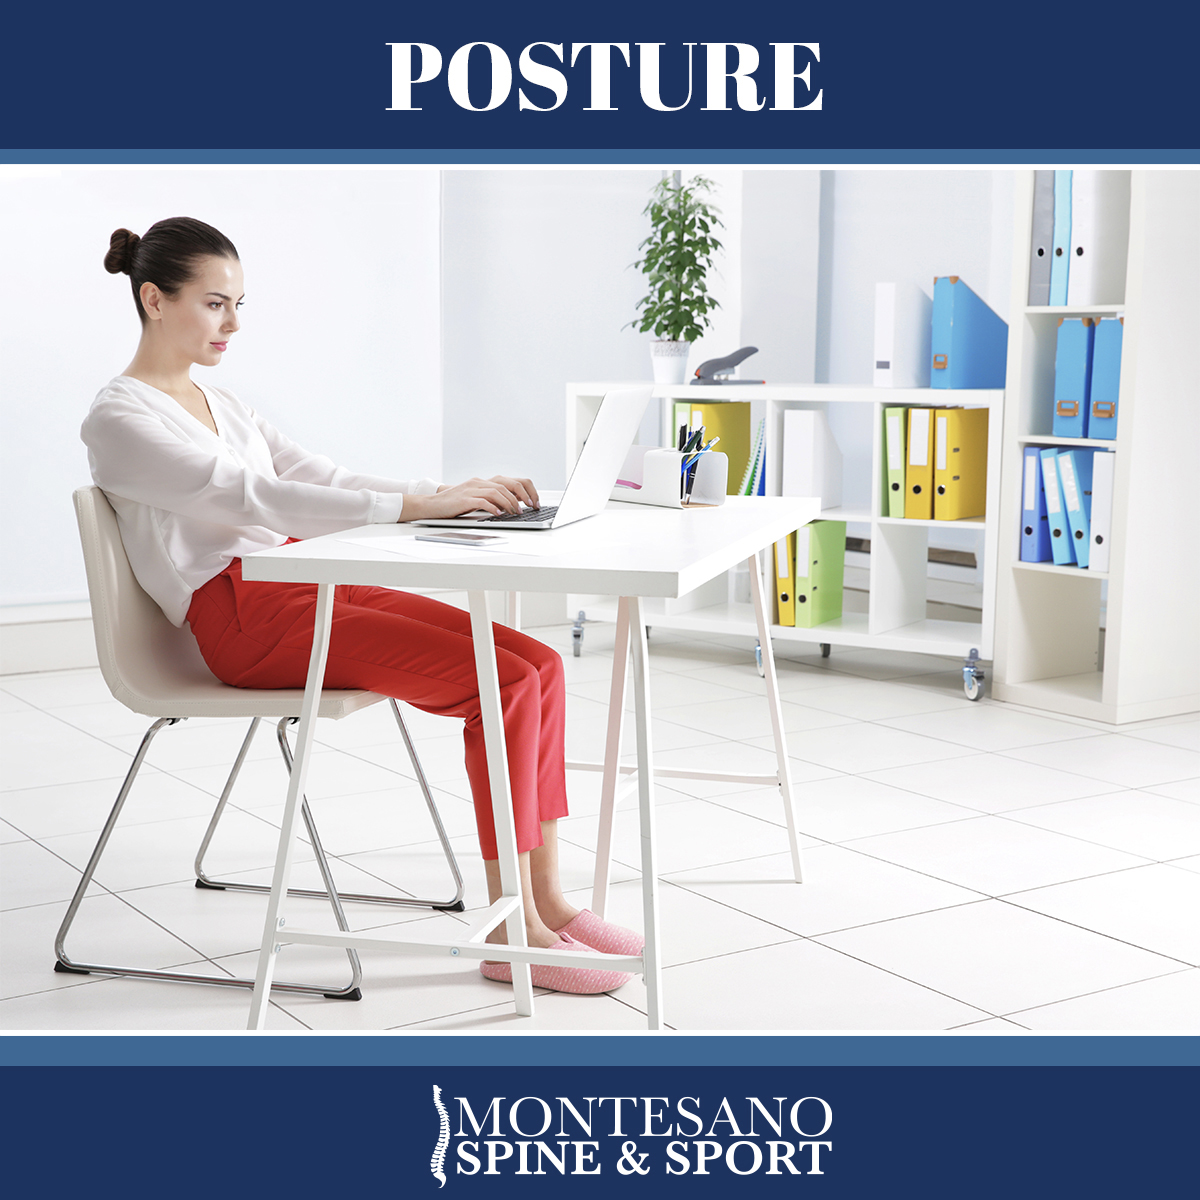 You are currently viewing Posture